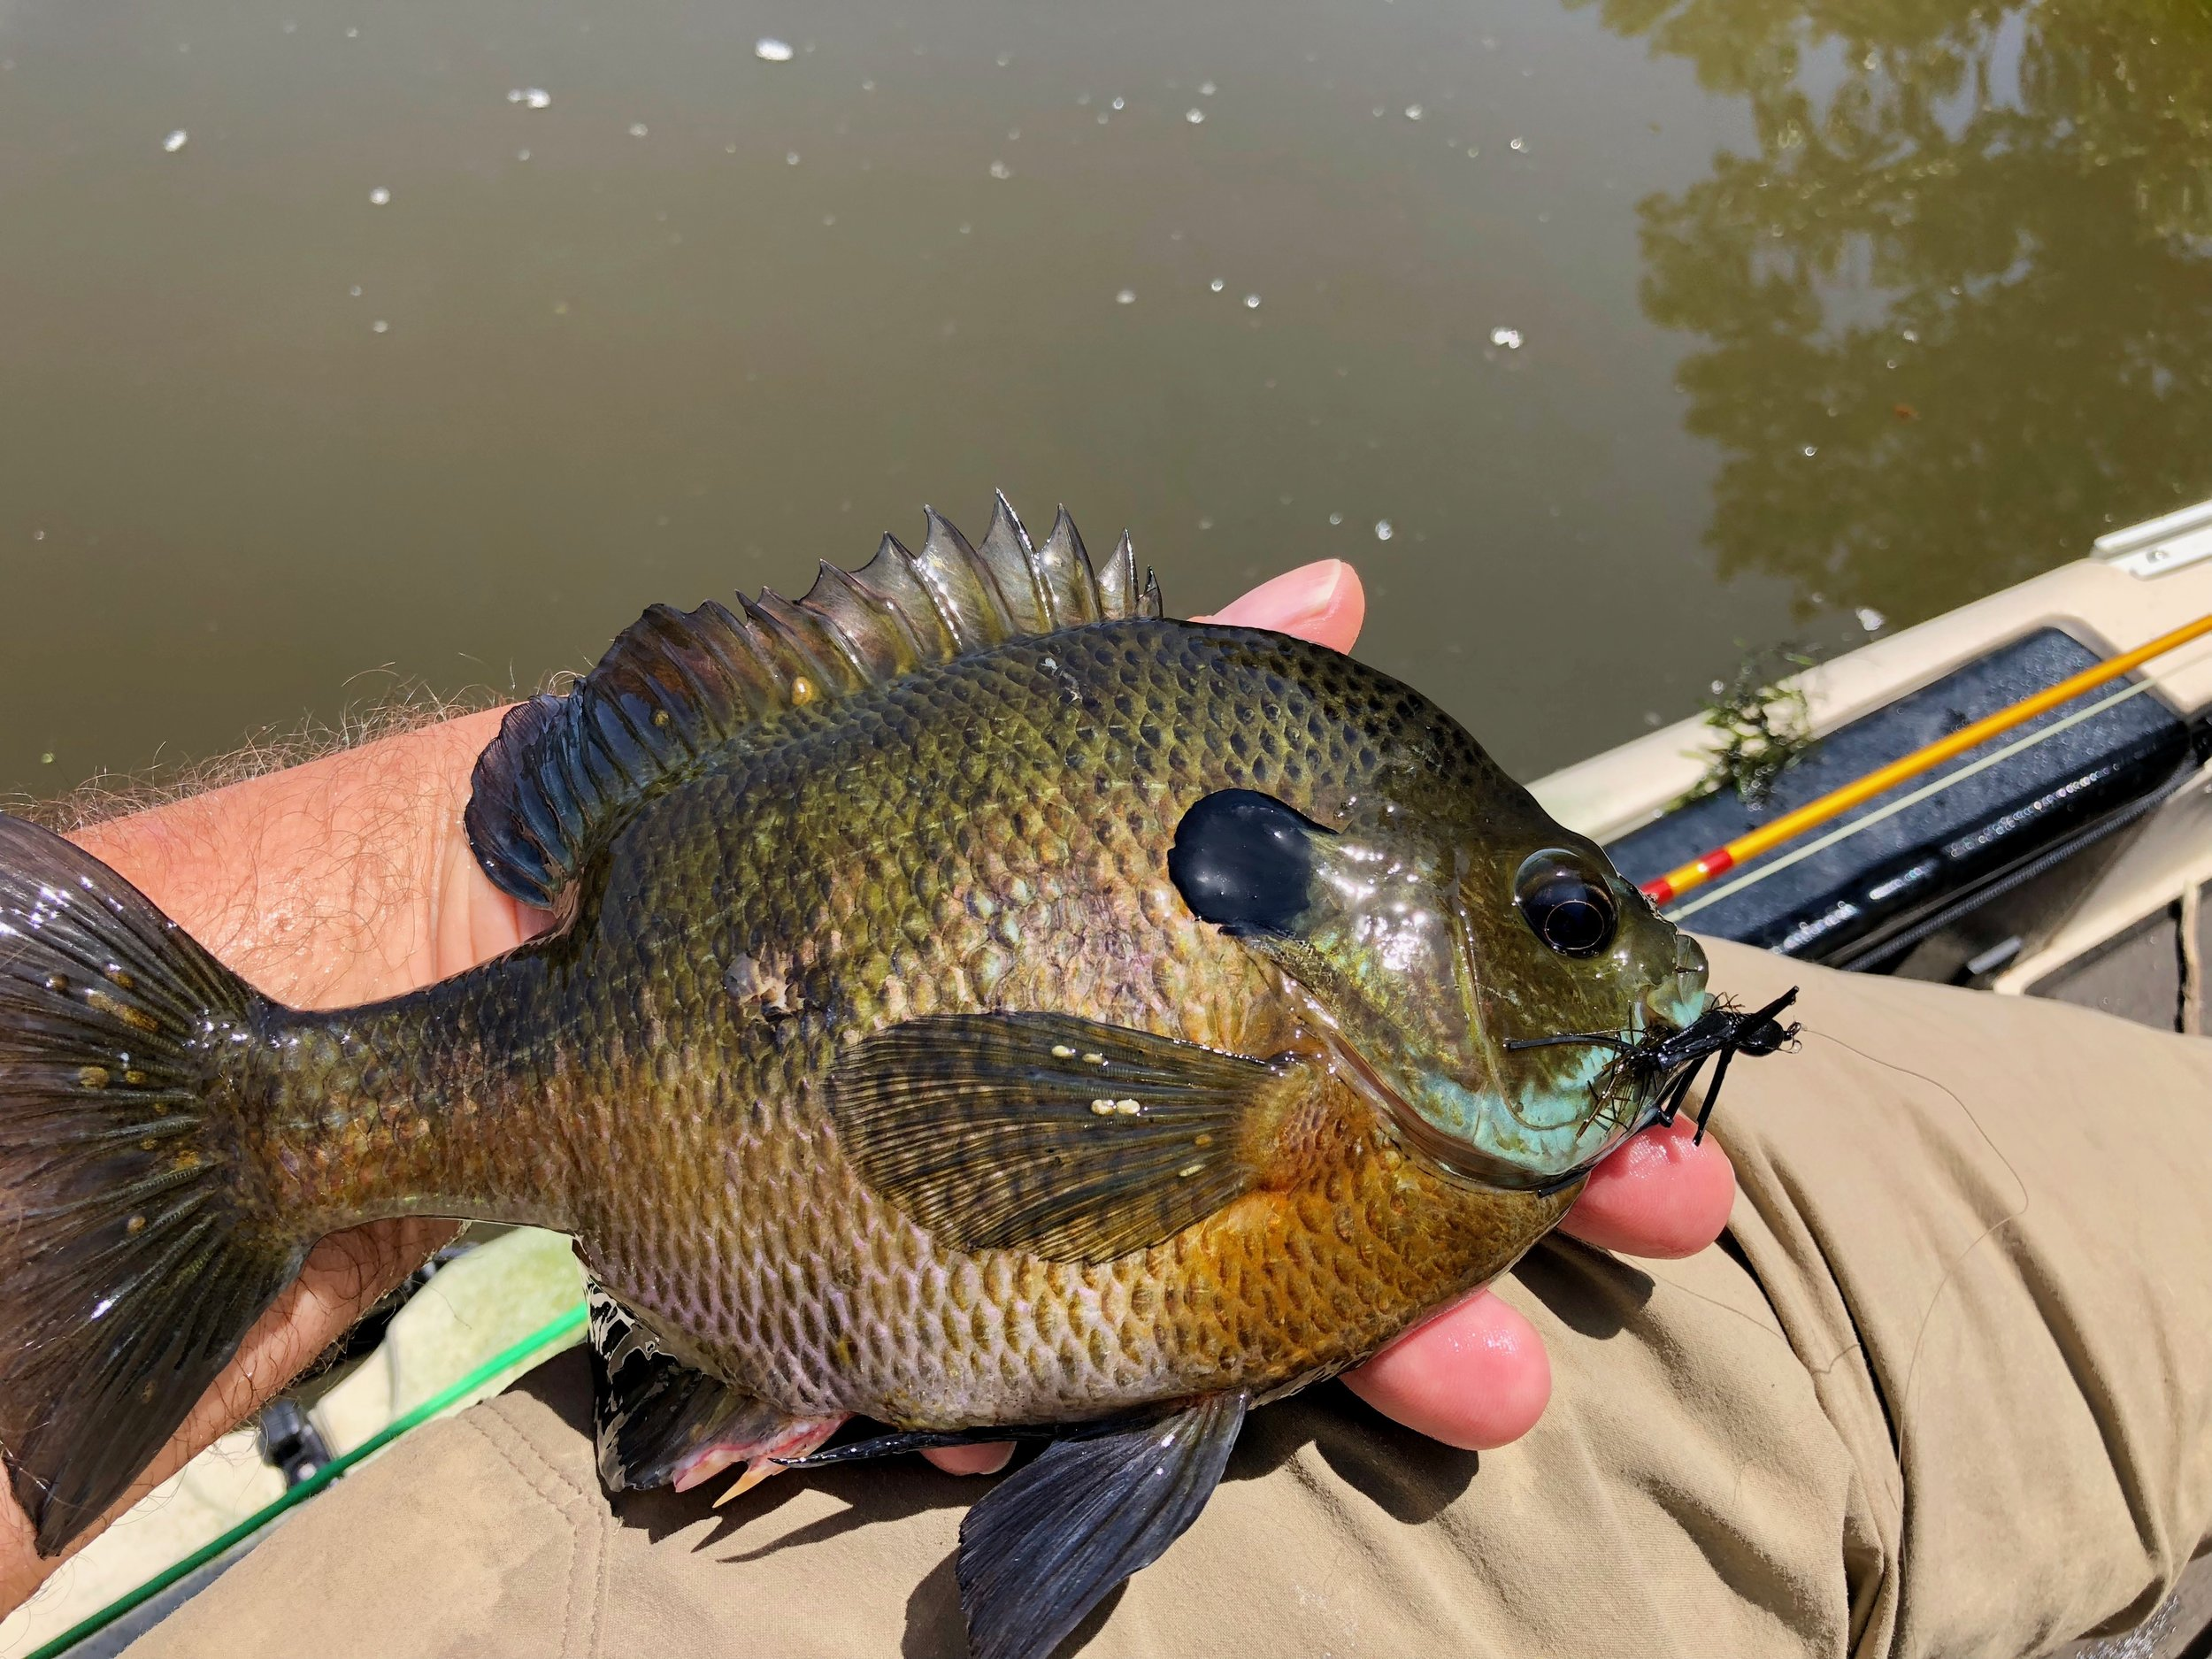 While it is possible to catch large panfish on the surface, you will enjoy more success fishing below it. Fish early or late in the day if you want to catch big bluegills on the surface.